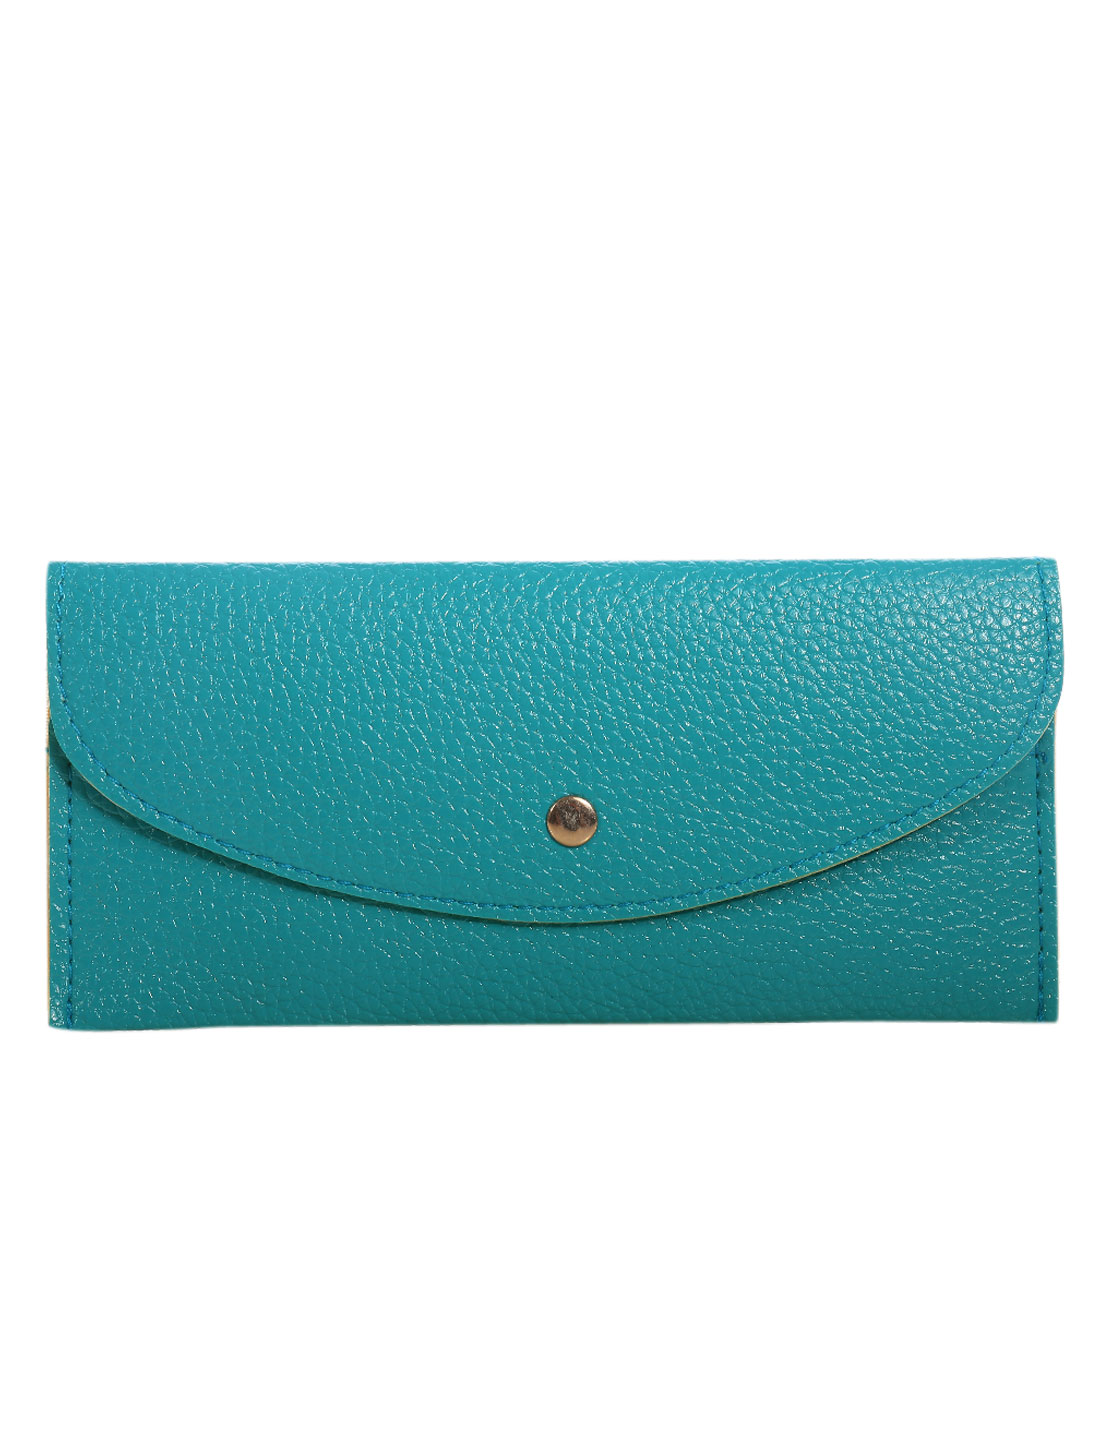 Unisex Snap-fastening Flap Multiple Card Slots Wallets Turquoise